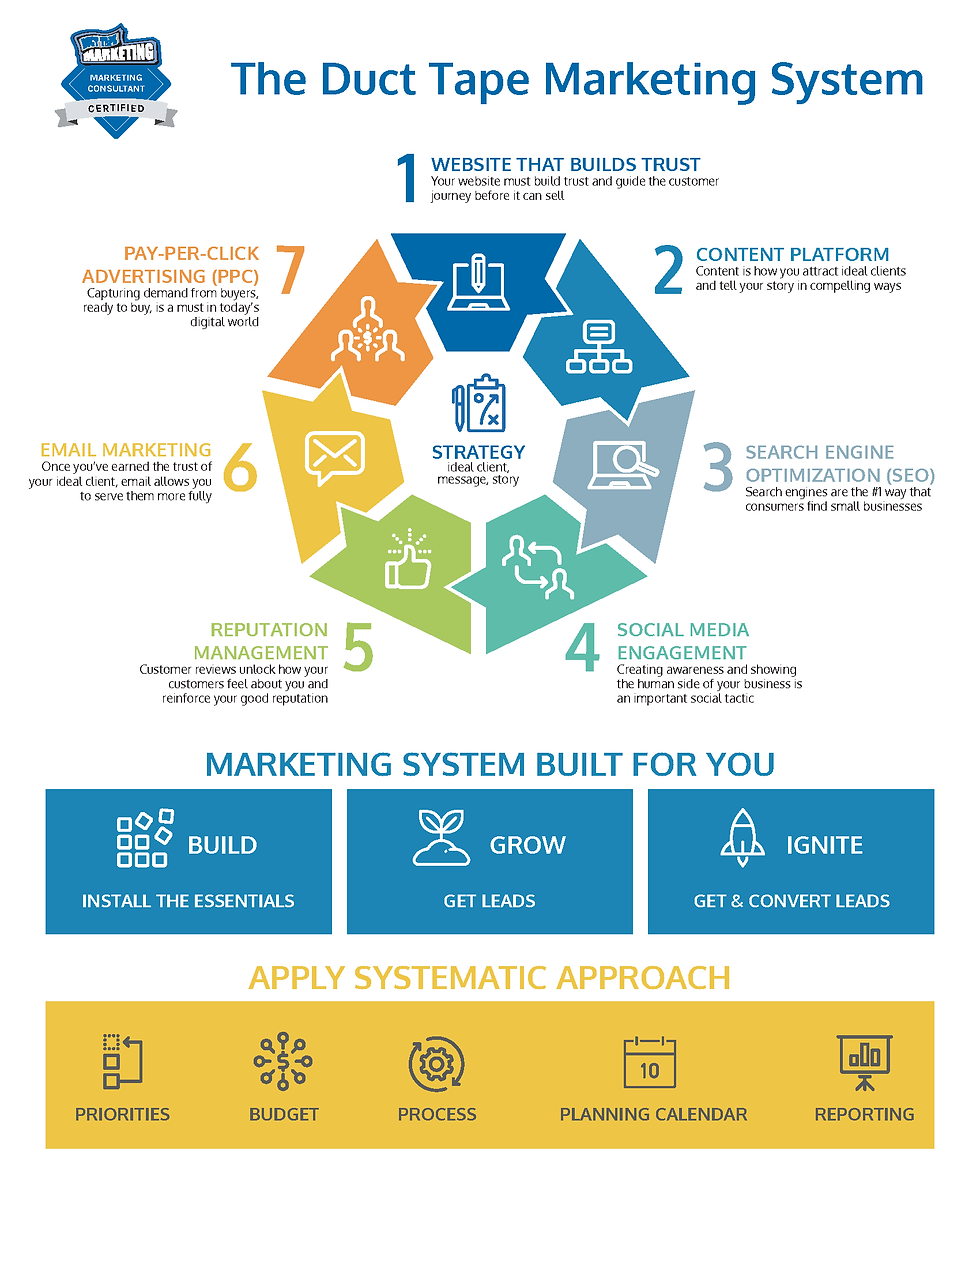 The Duct Tape Marketing System